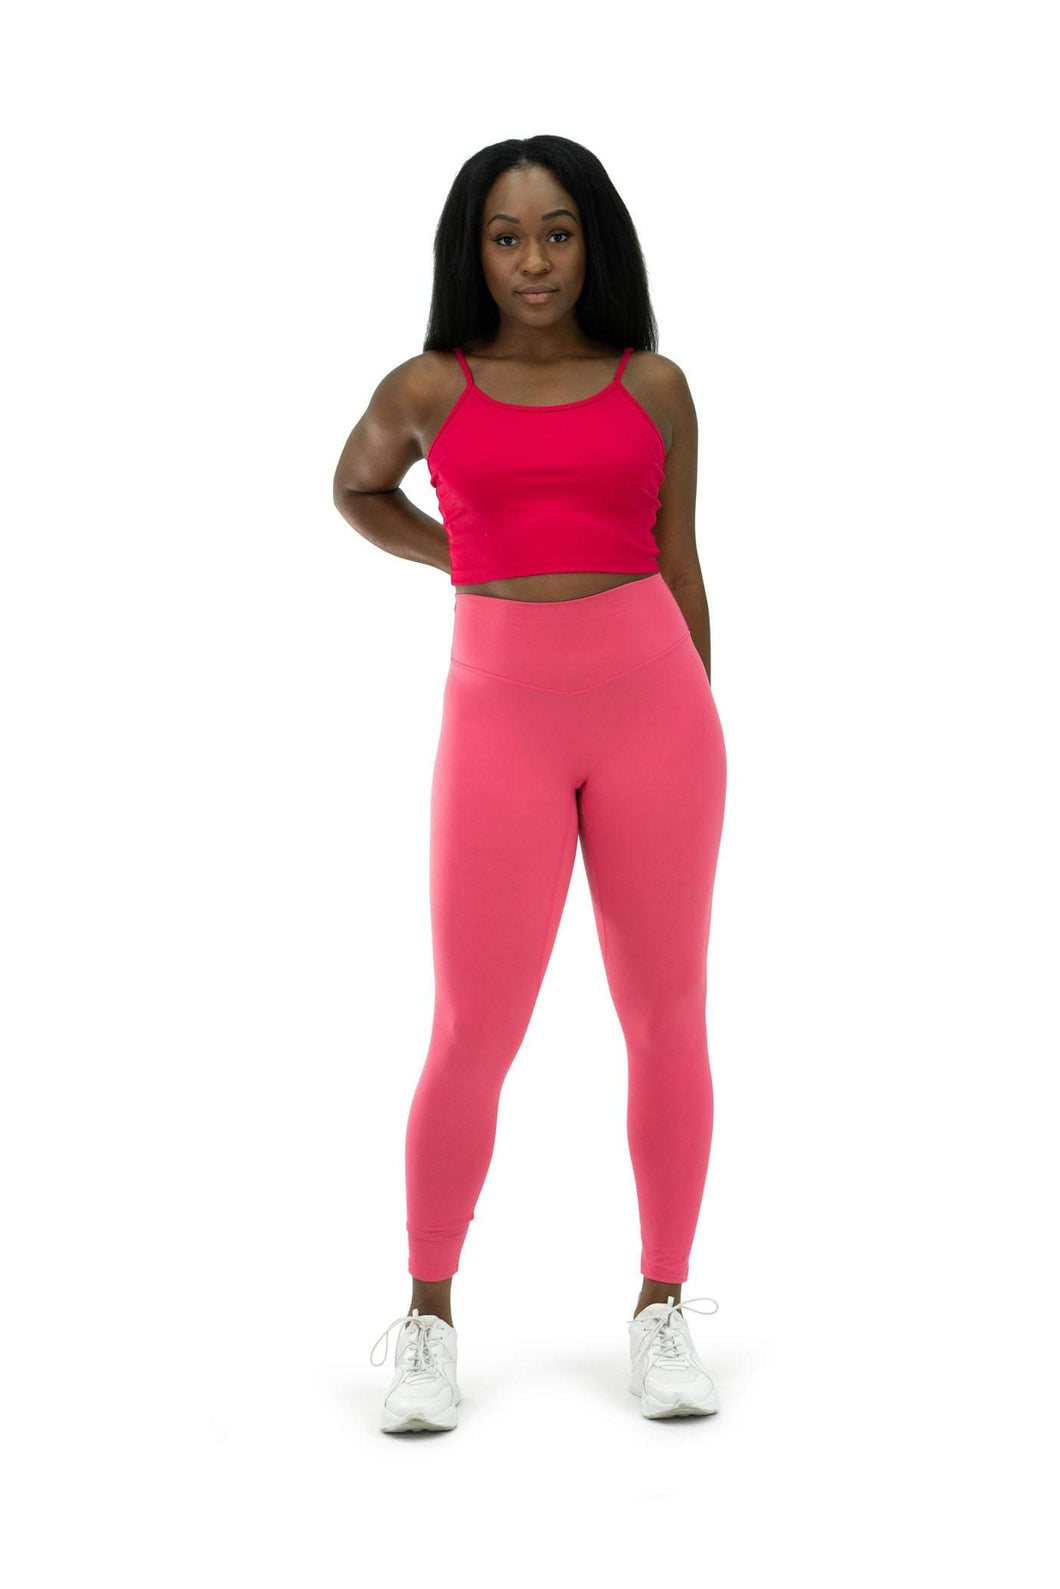 Balance Athletica Bottoms The Select Pant - Guava